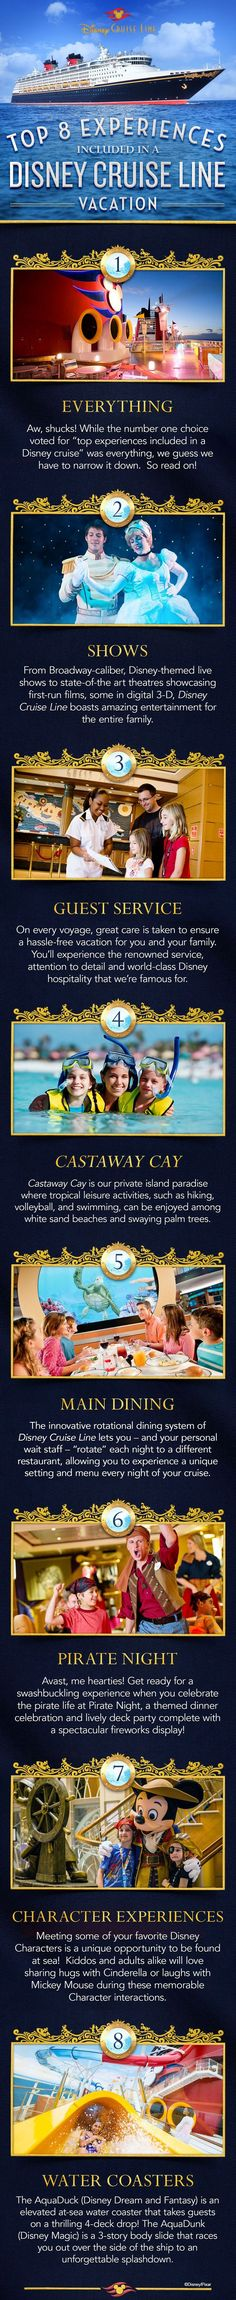 From Broadway-caliber shows to Castaway Cay, Disney Cruise Line's private island paradise, check out these Top 8 Experiences that are included in your Disney cruise. disney cruise, crusing with disney #disney #cruise #cruisi